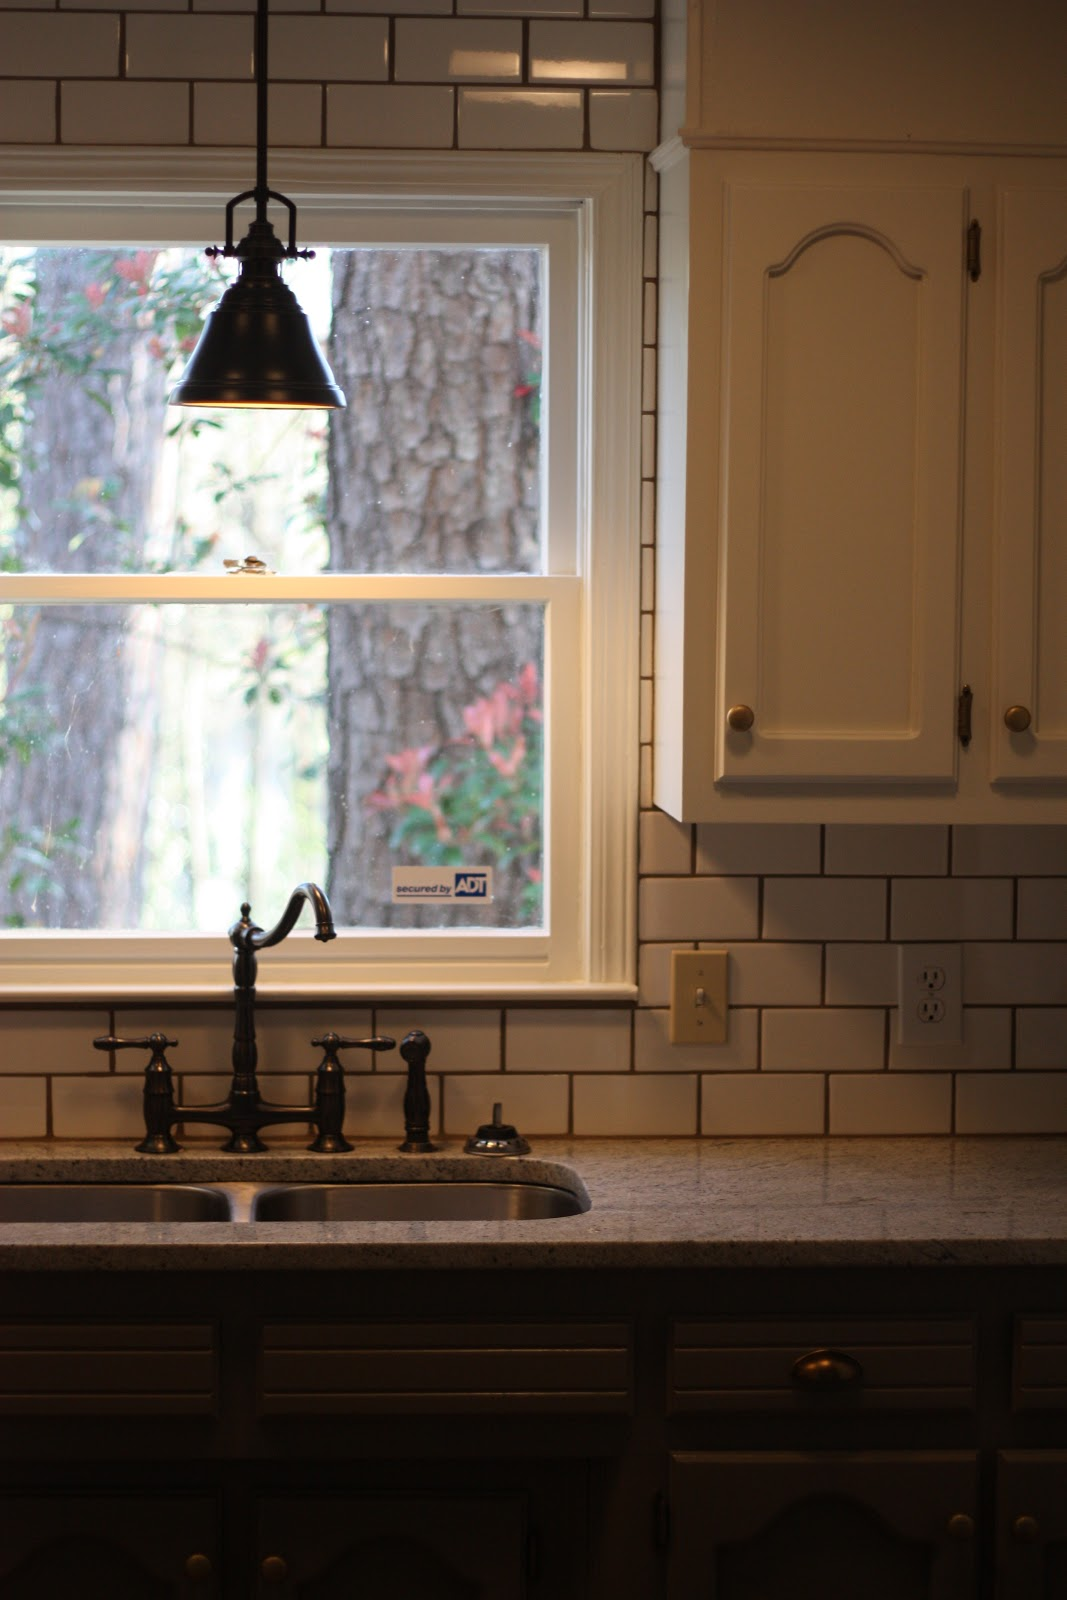 Kitchen Wall Light Over Sink : How Sweet It Is...: Kitchen Update